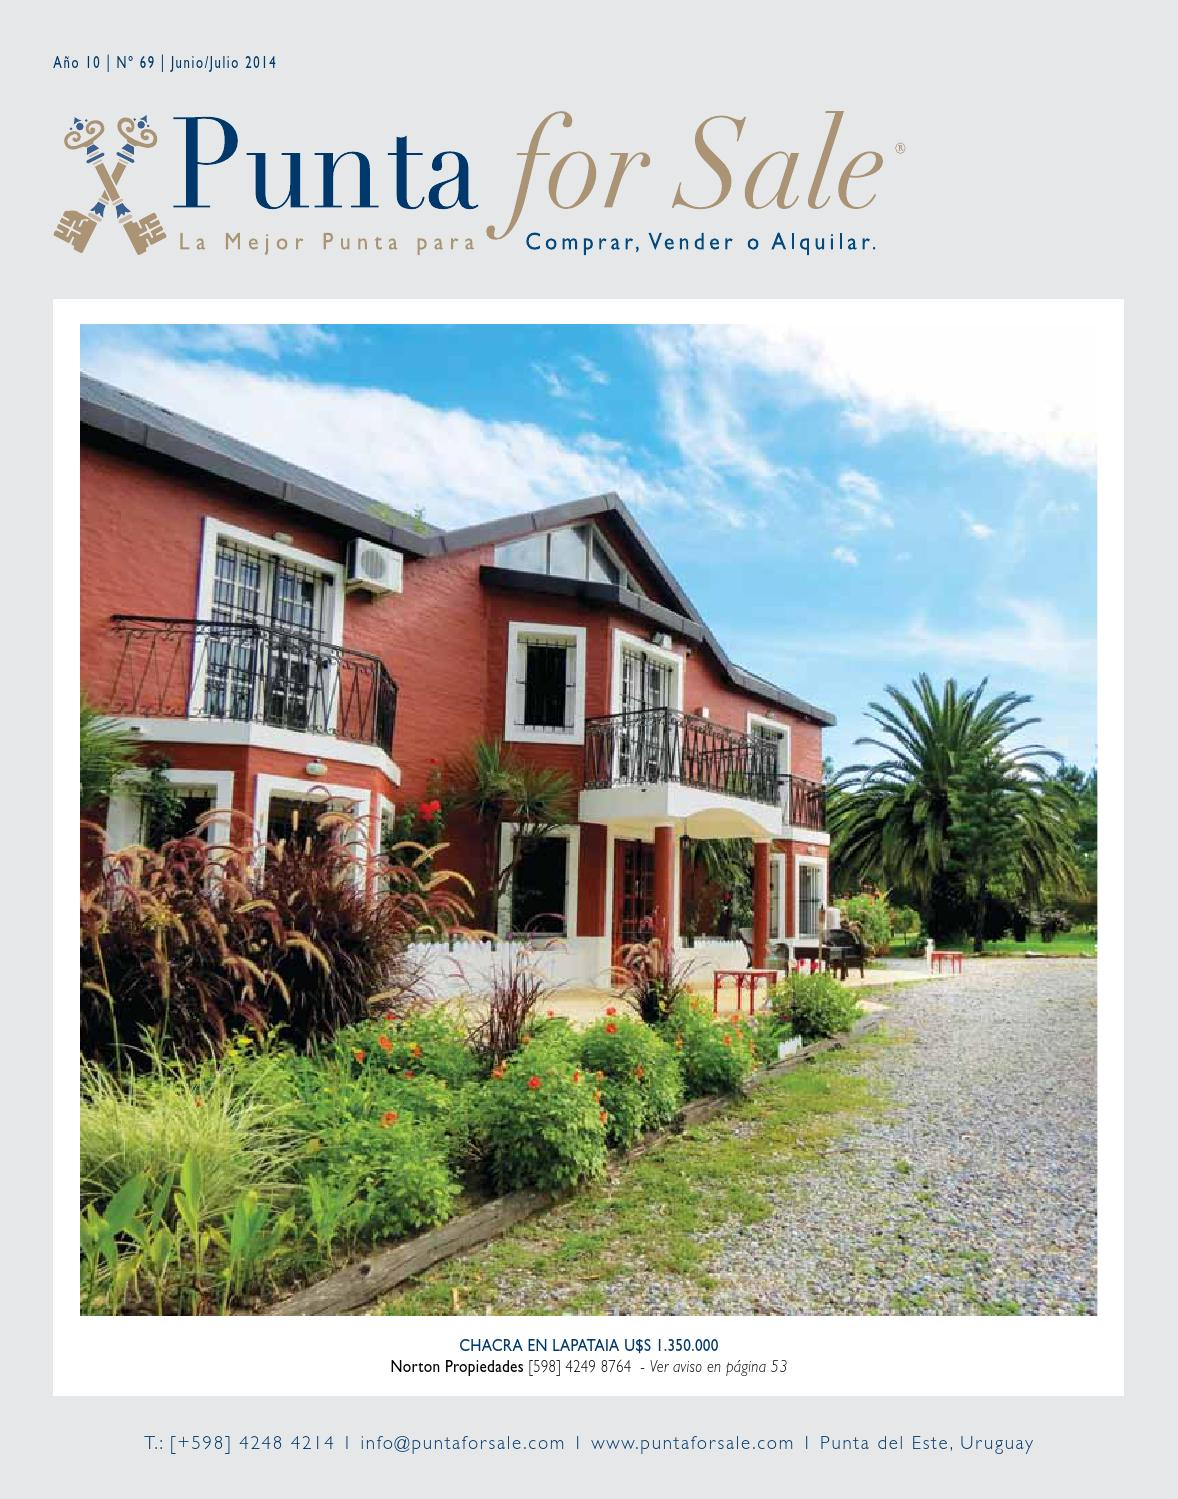 Revista de Real Estate Punta For Sale, edición Junio - Julio 2014